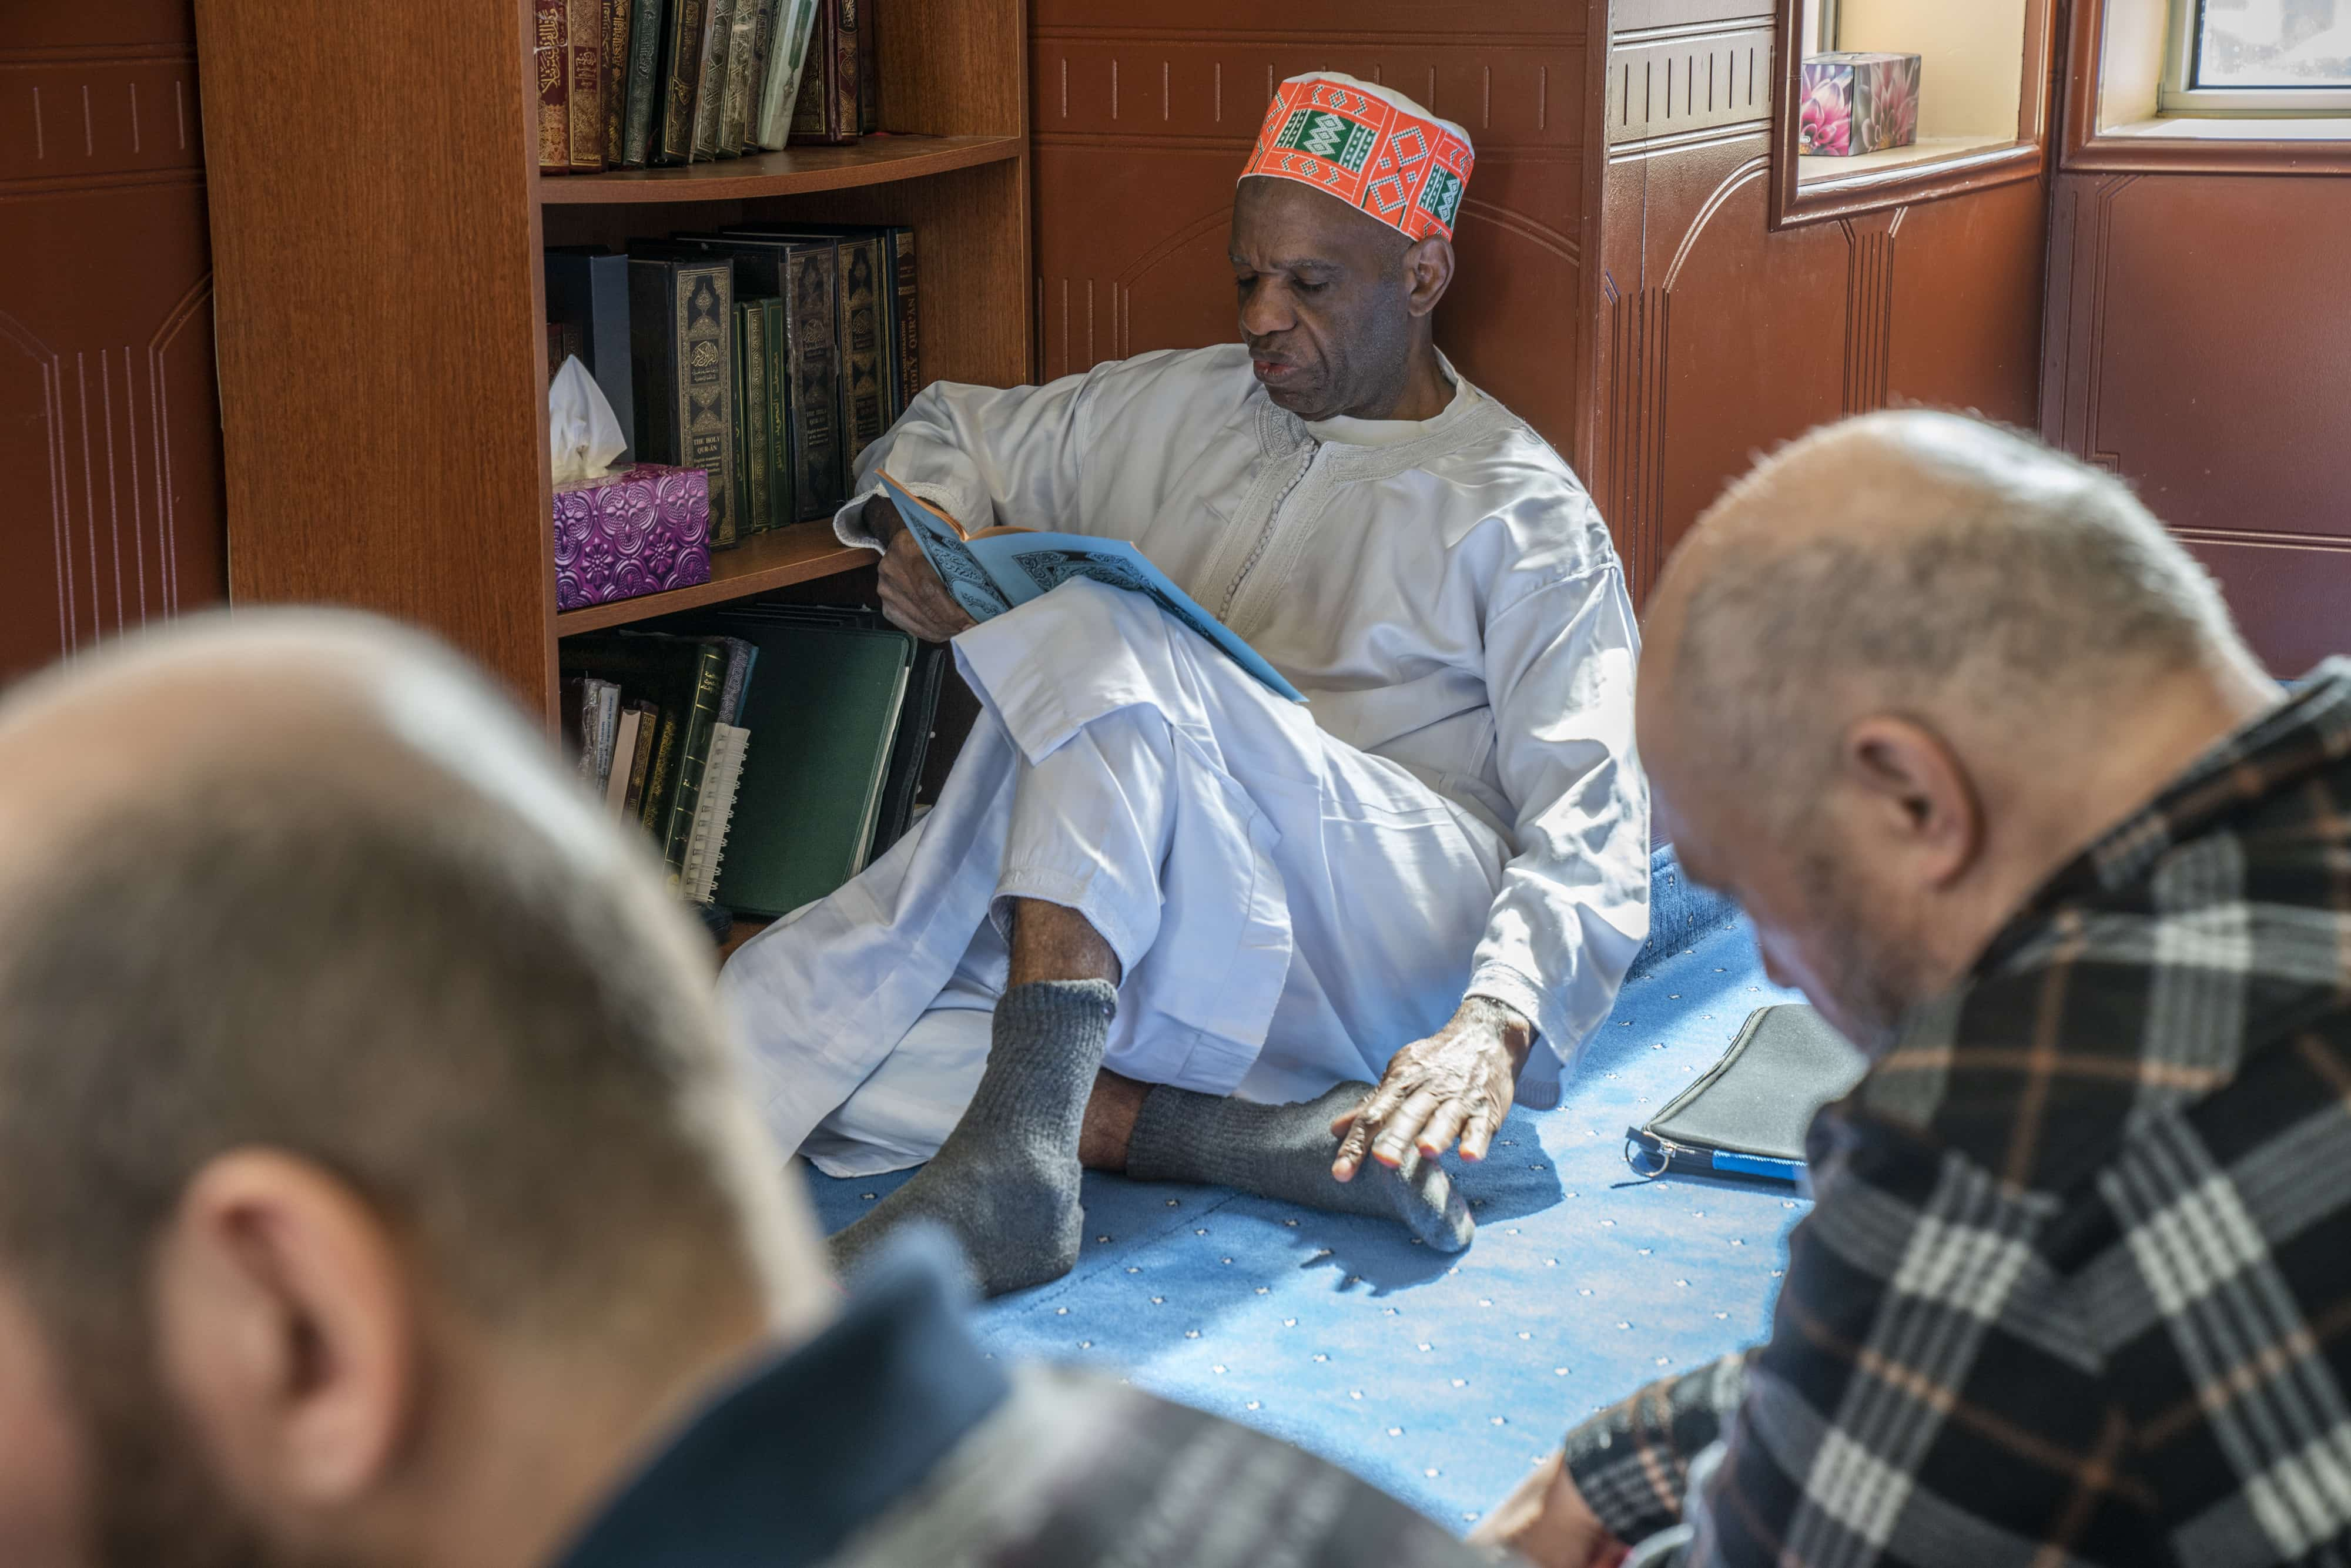 A man studies the Quran amidst the congregation. The Quran is the main holy scripture of Islam.